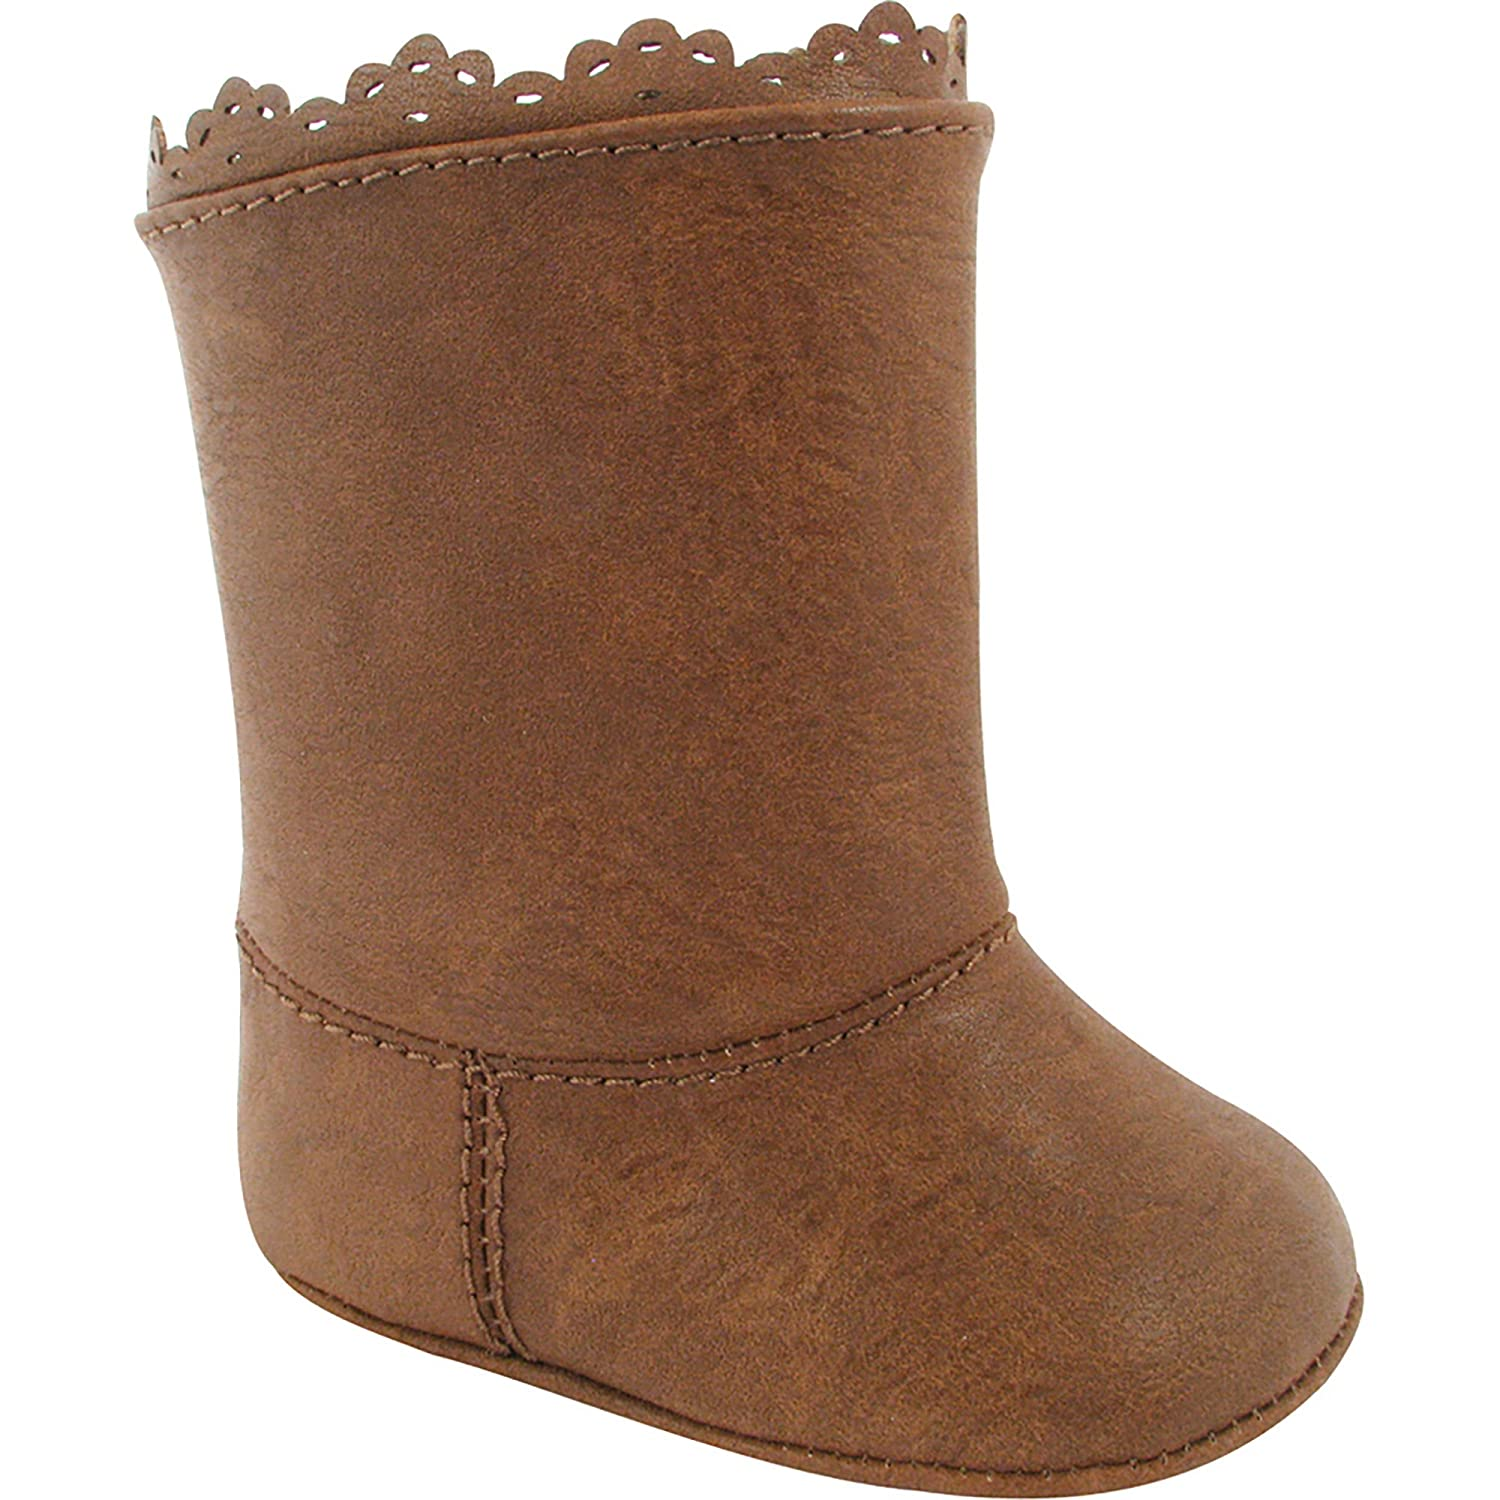 Baby Deer Infant Girls Brown Boots Crib Shoes Tan